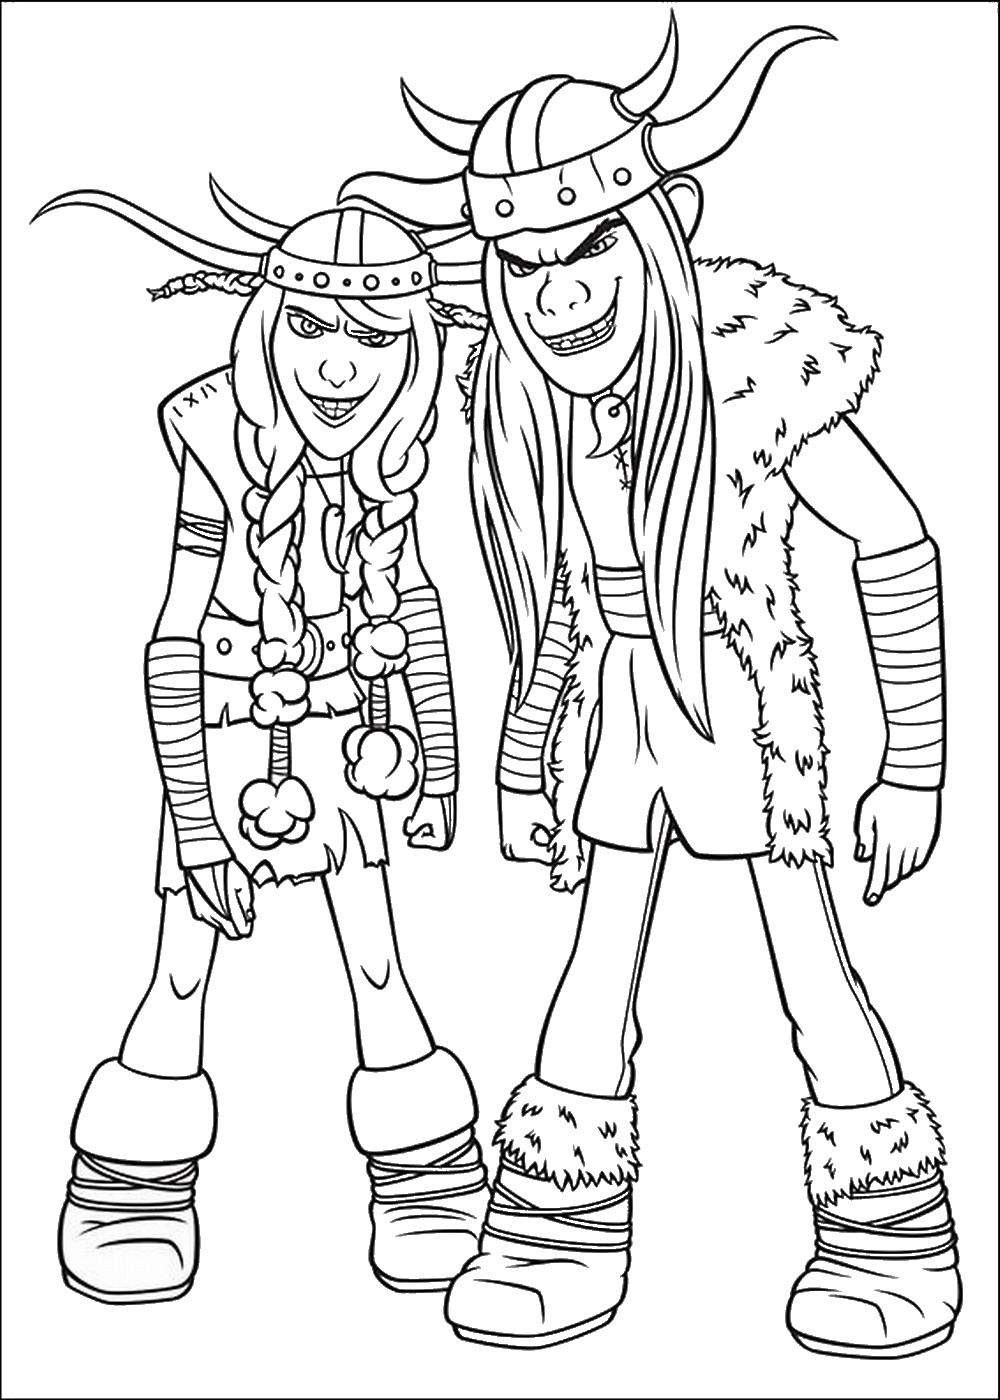 How to train your dragon coloring pages - How To Train Your Dragon Printable Coloring Pages